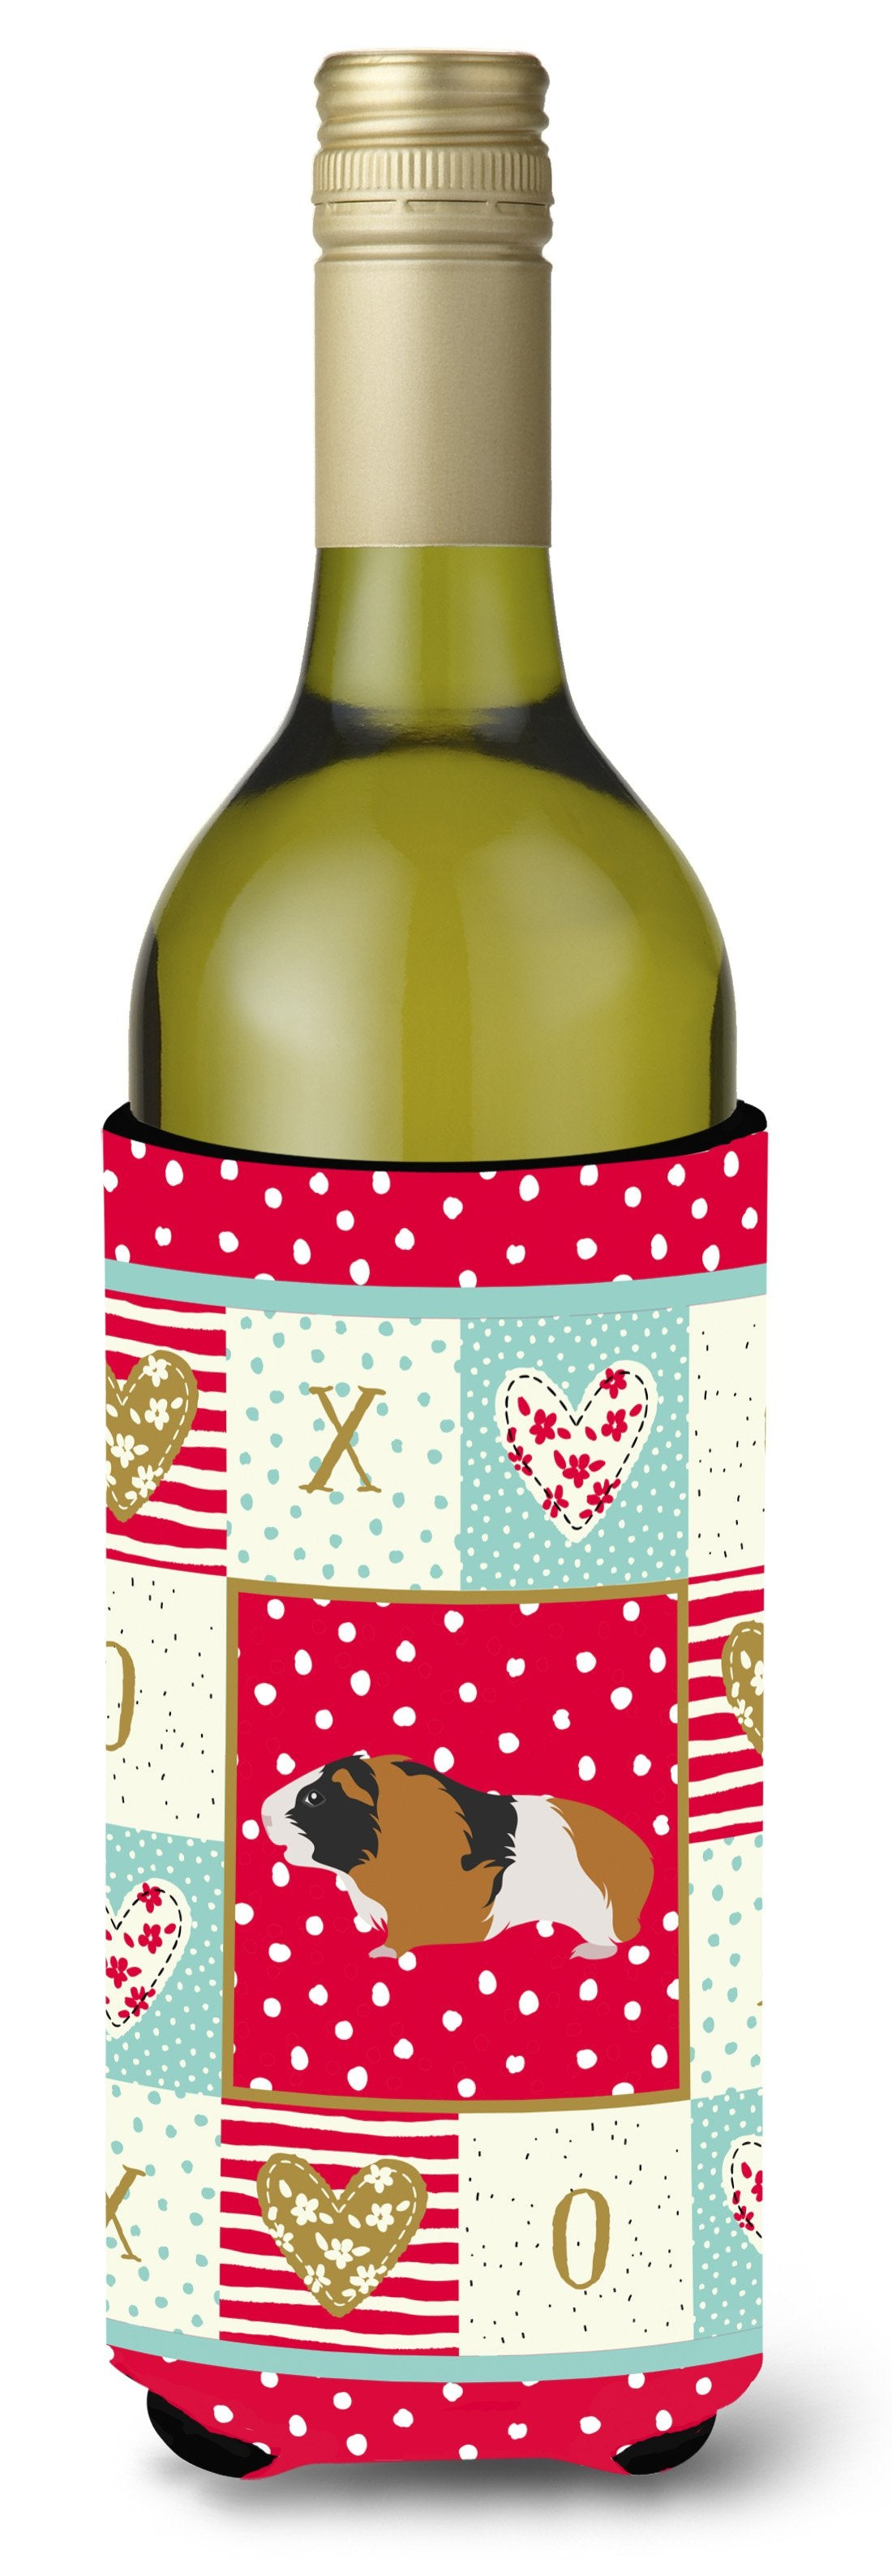 Rex Guinea Pig Love Wine Bottle Hugger CK5432LITERK by Caroline's Treasures